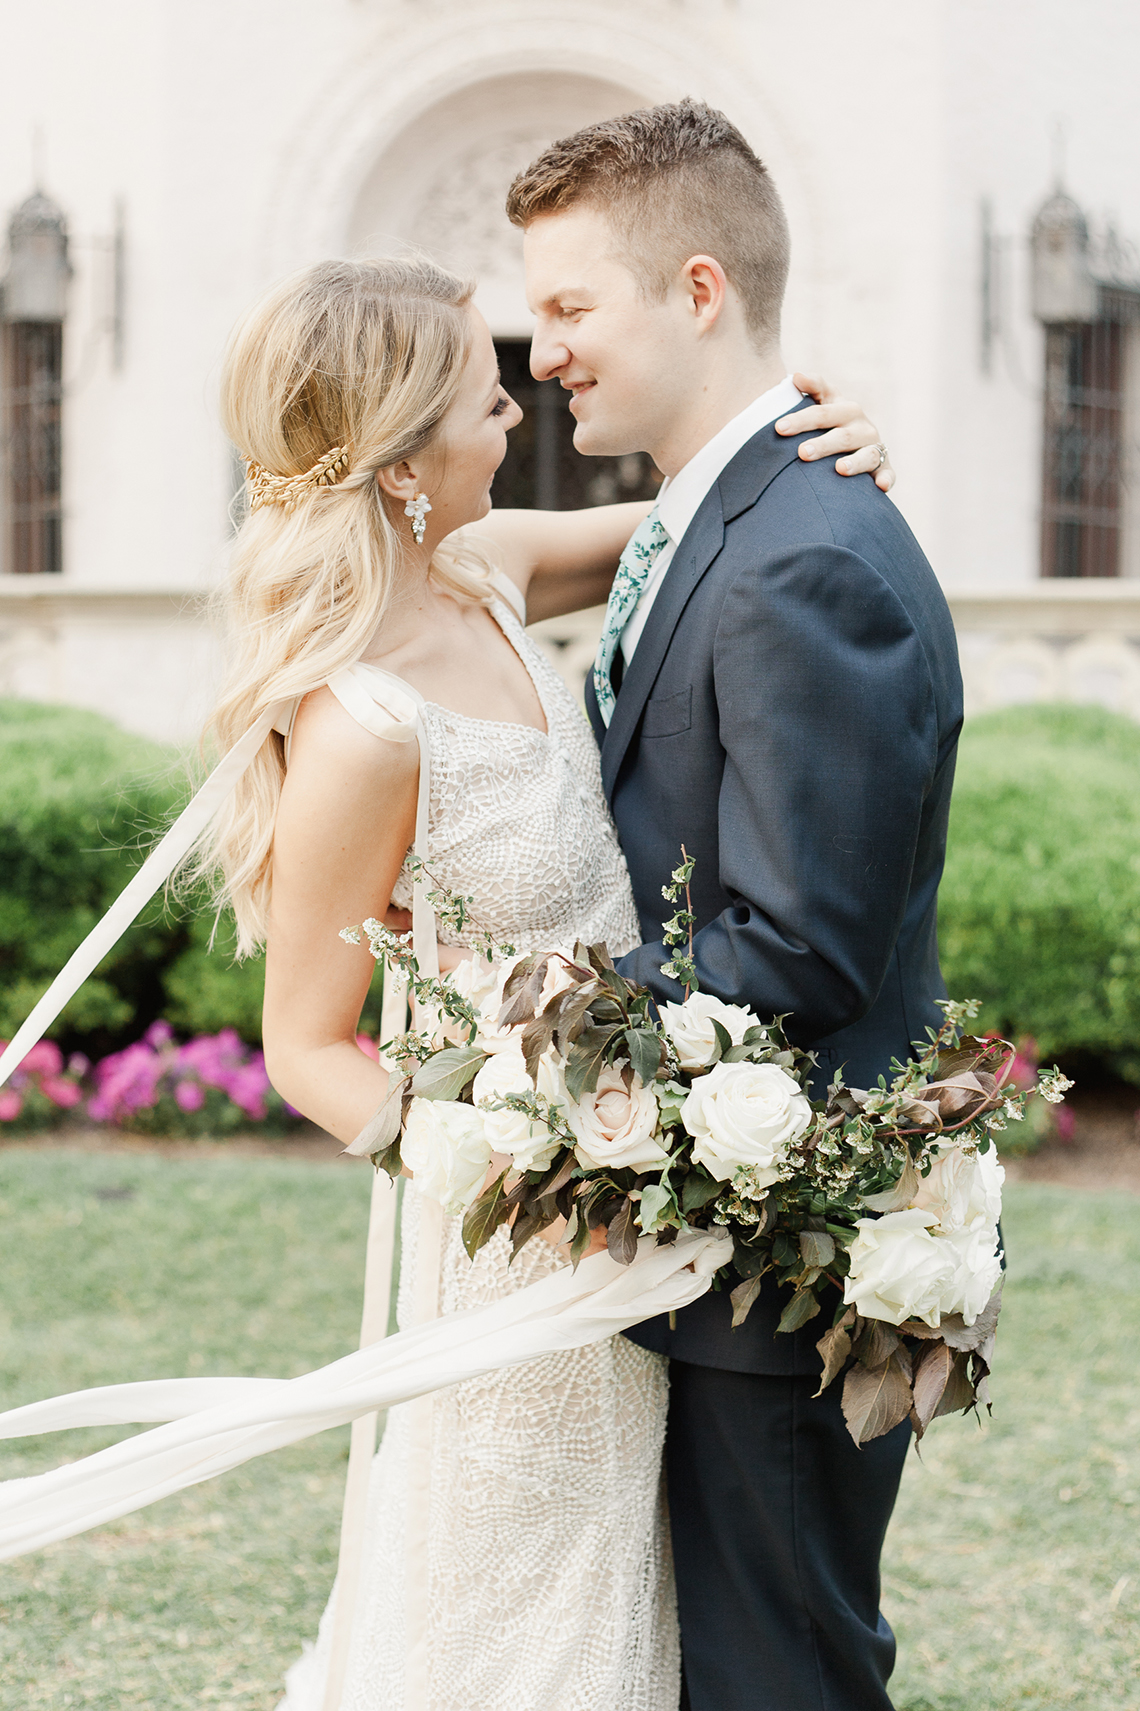 Rustic Spanish Wedding Inspiration From San Antonio Texas – Faith Roper Photography 31